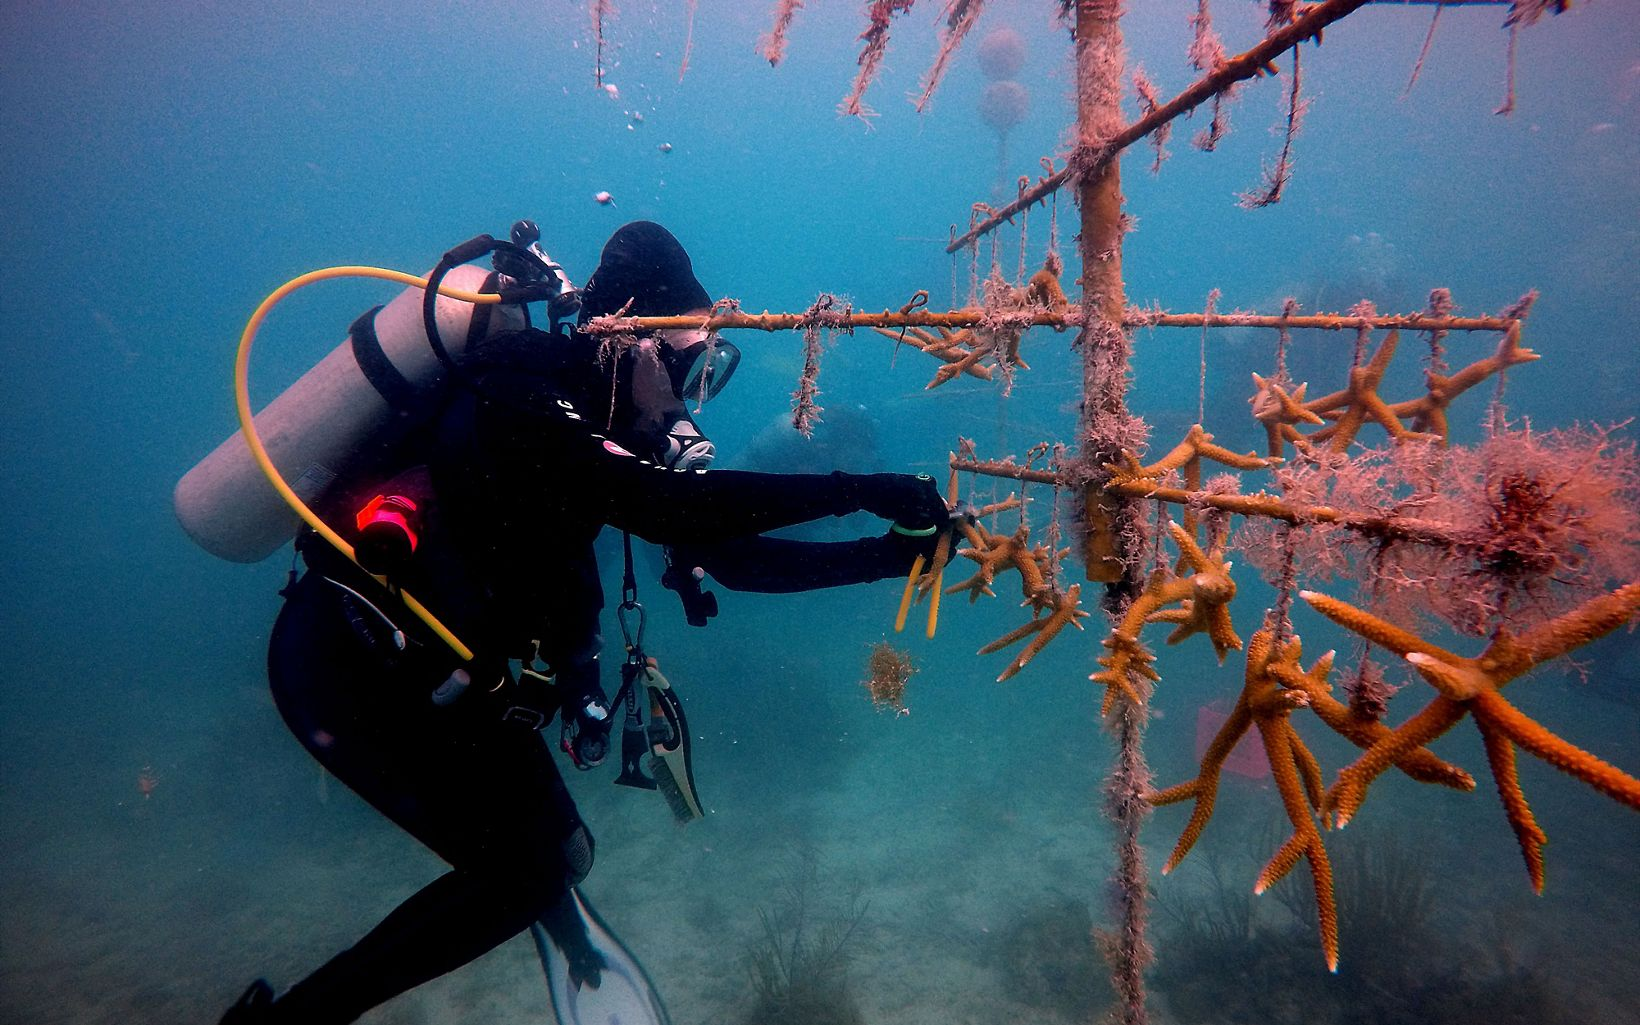 TNC Coral Nursery in the Dry Tortugas National Park, Florida